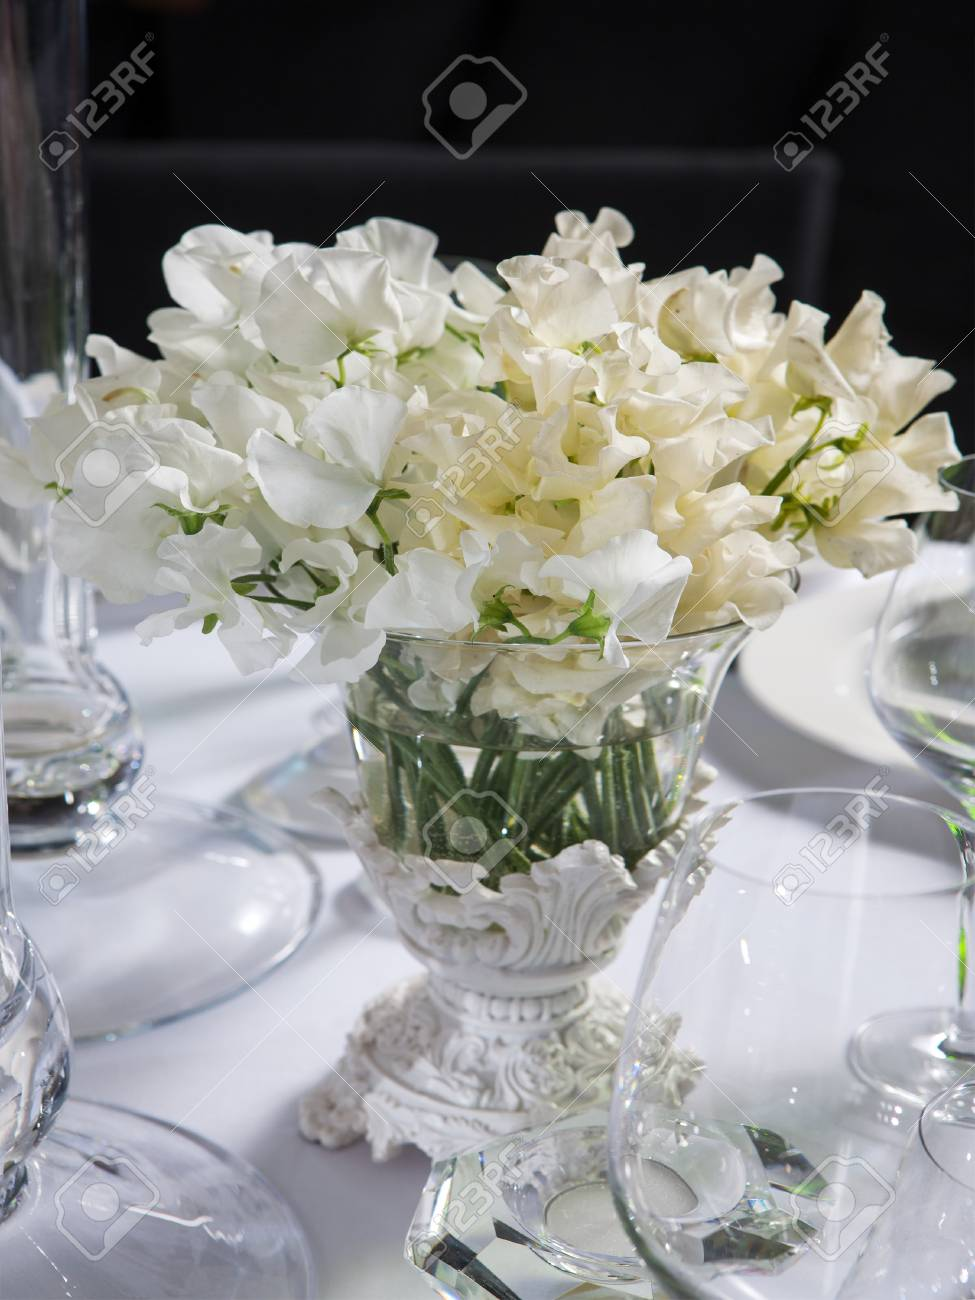 Decoration Of Wedding Table Bouquet Of White Flowers Of Sweet